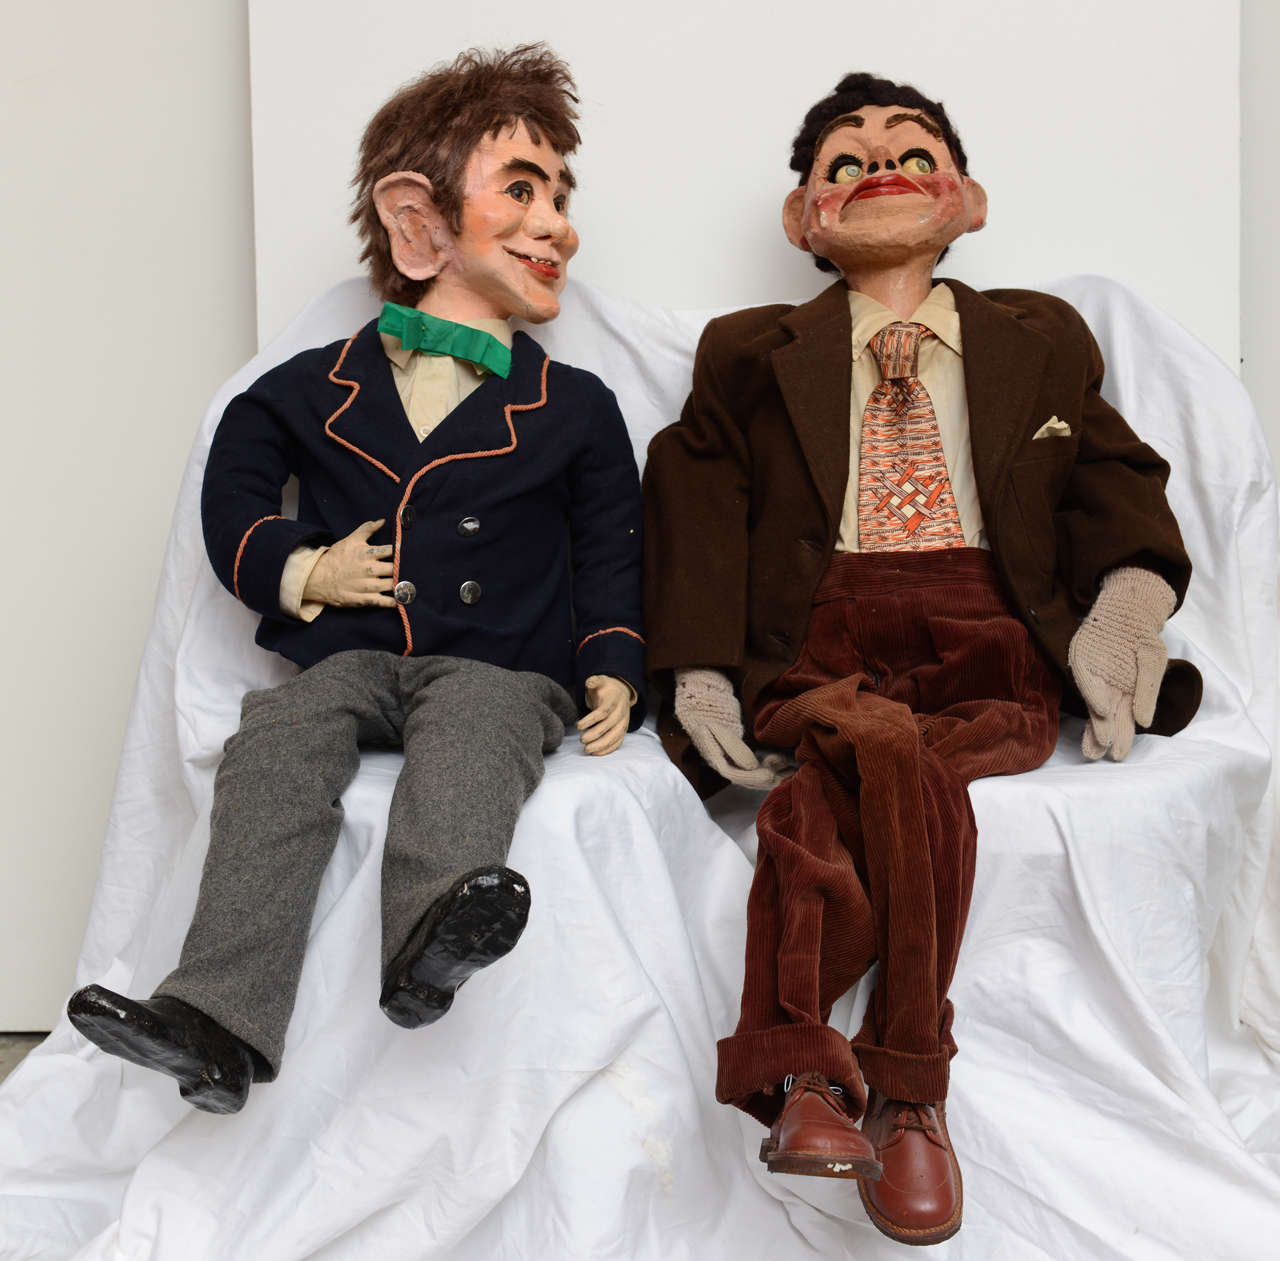 Pair of Ventriloquist Dummies image 2